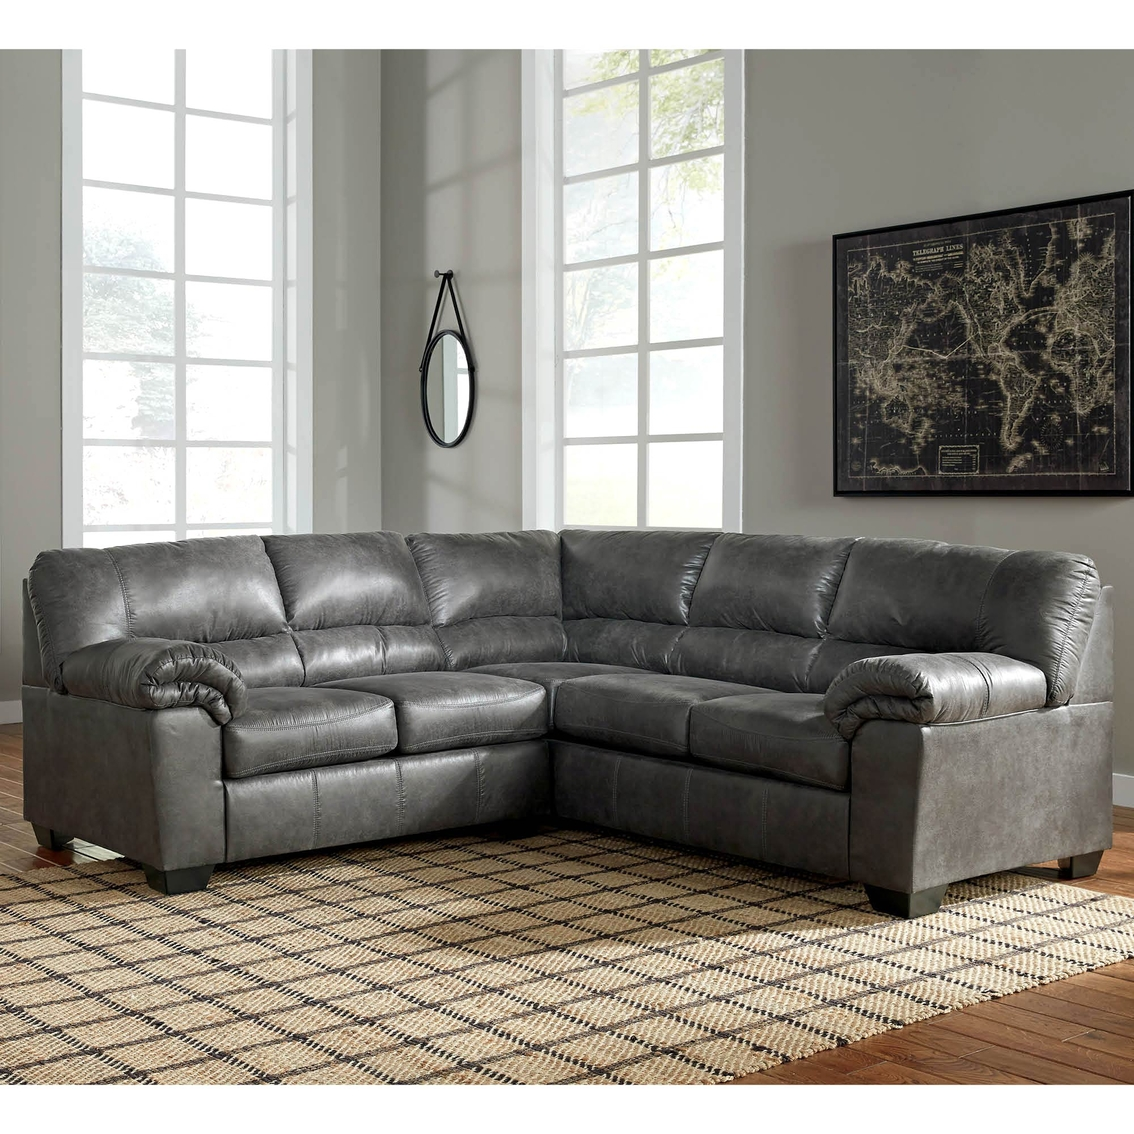 Terrific Signature Design By Ashley Bladen 2 Pc Sectional Raf Andrewgaddart Wooden Chair Designs For Living Room Andrewgaddartcom